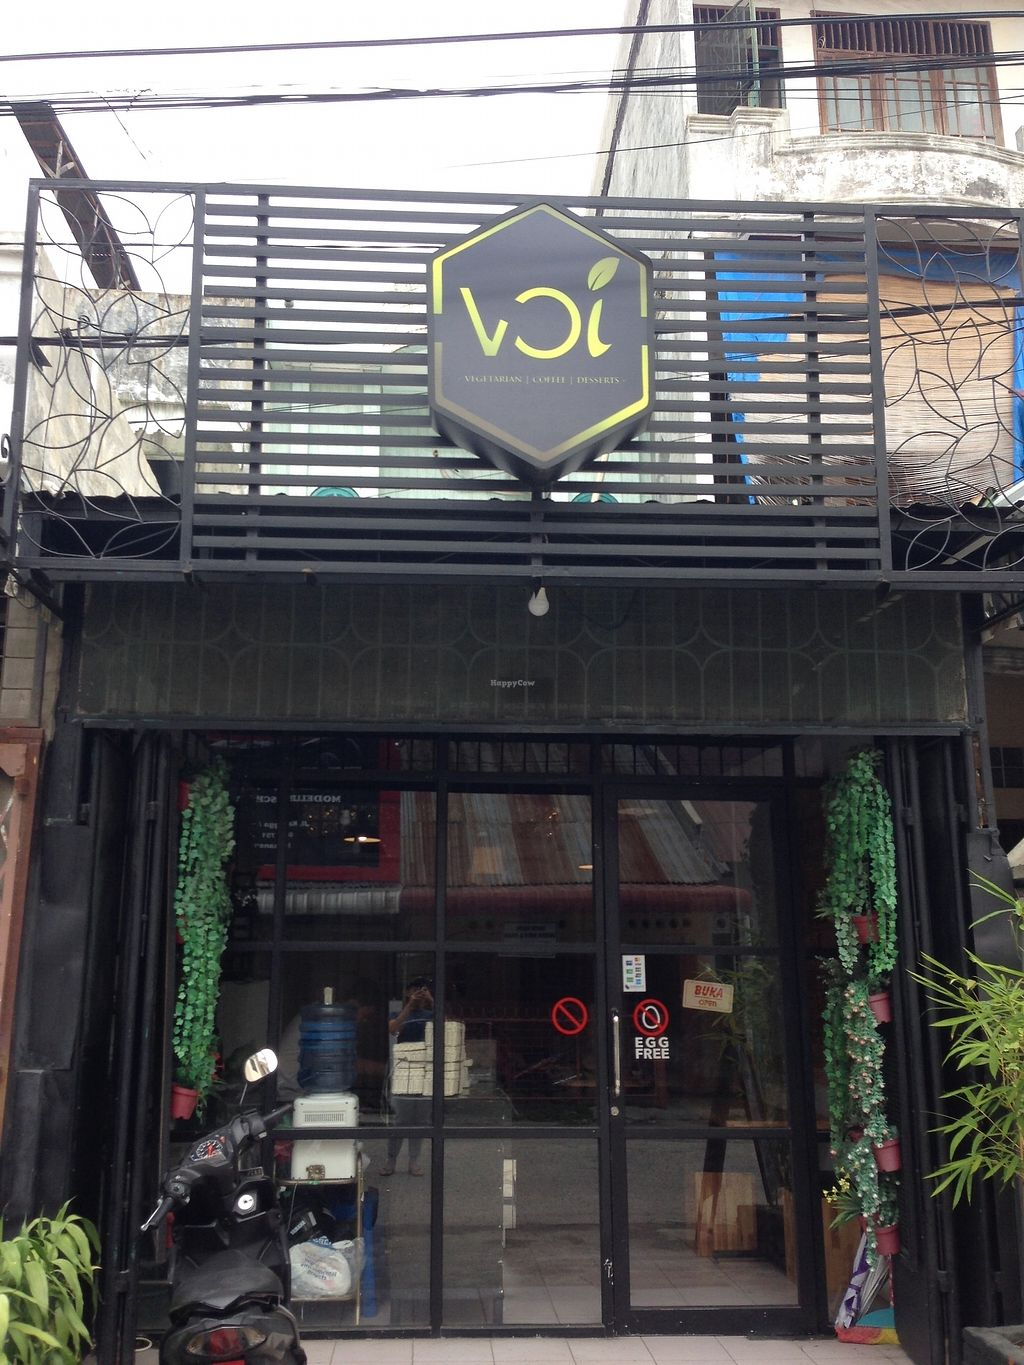 """Photo of Voi  by <a href=""""/members/profile/Rendyariestanto"""">Rendyariestanto</a> <br/>The look of the small humble store <br/> December 7, 2017  - <a href='/contact/abuse/image/106729/333017'>Report</a>"""